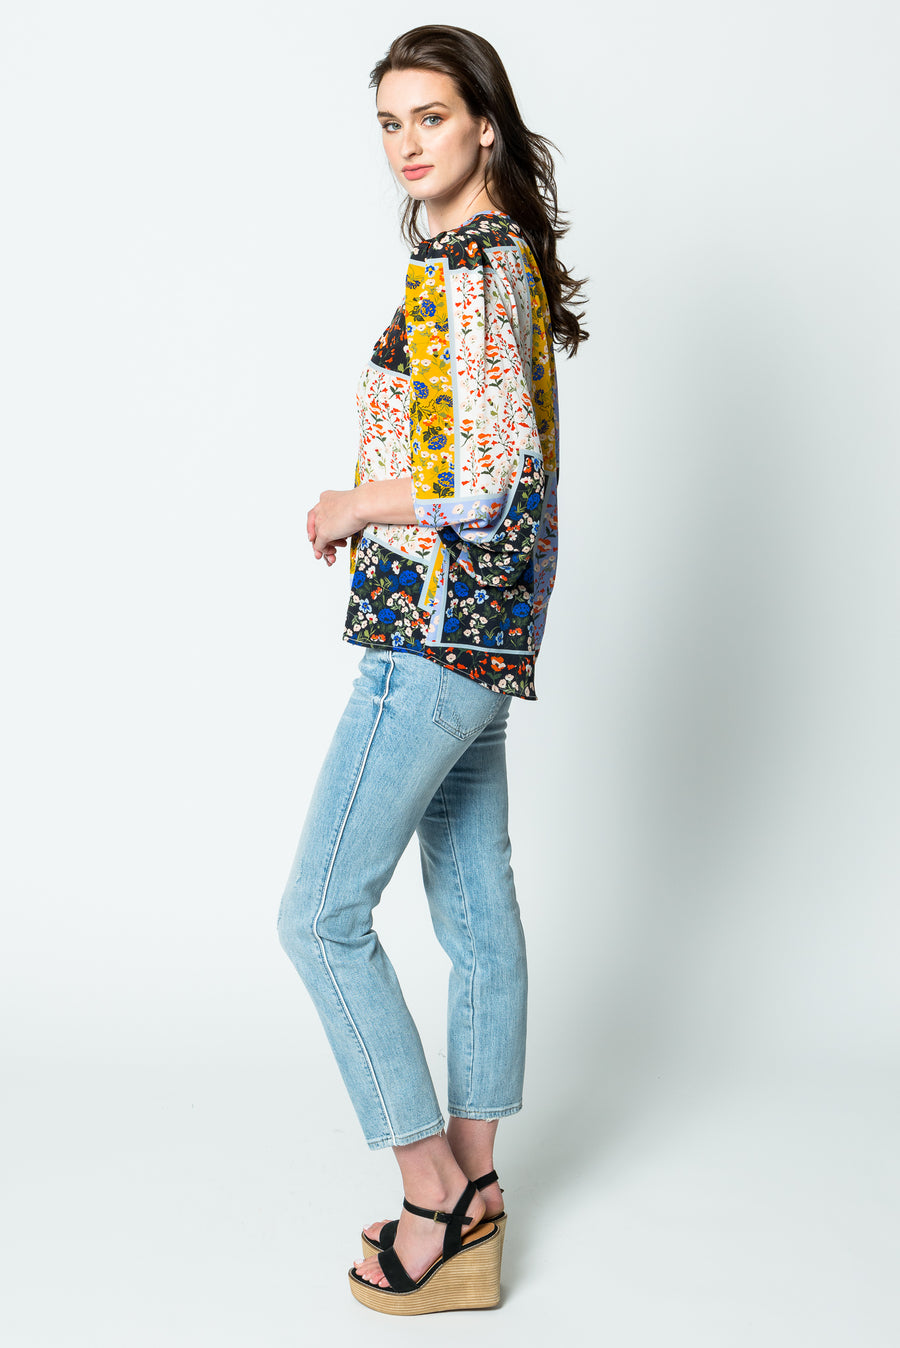 Hunter Bell Finley Blouse in Wildflower Patchwork